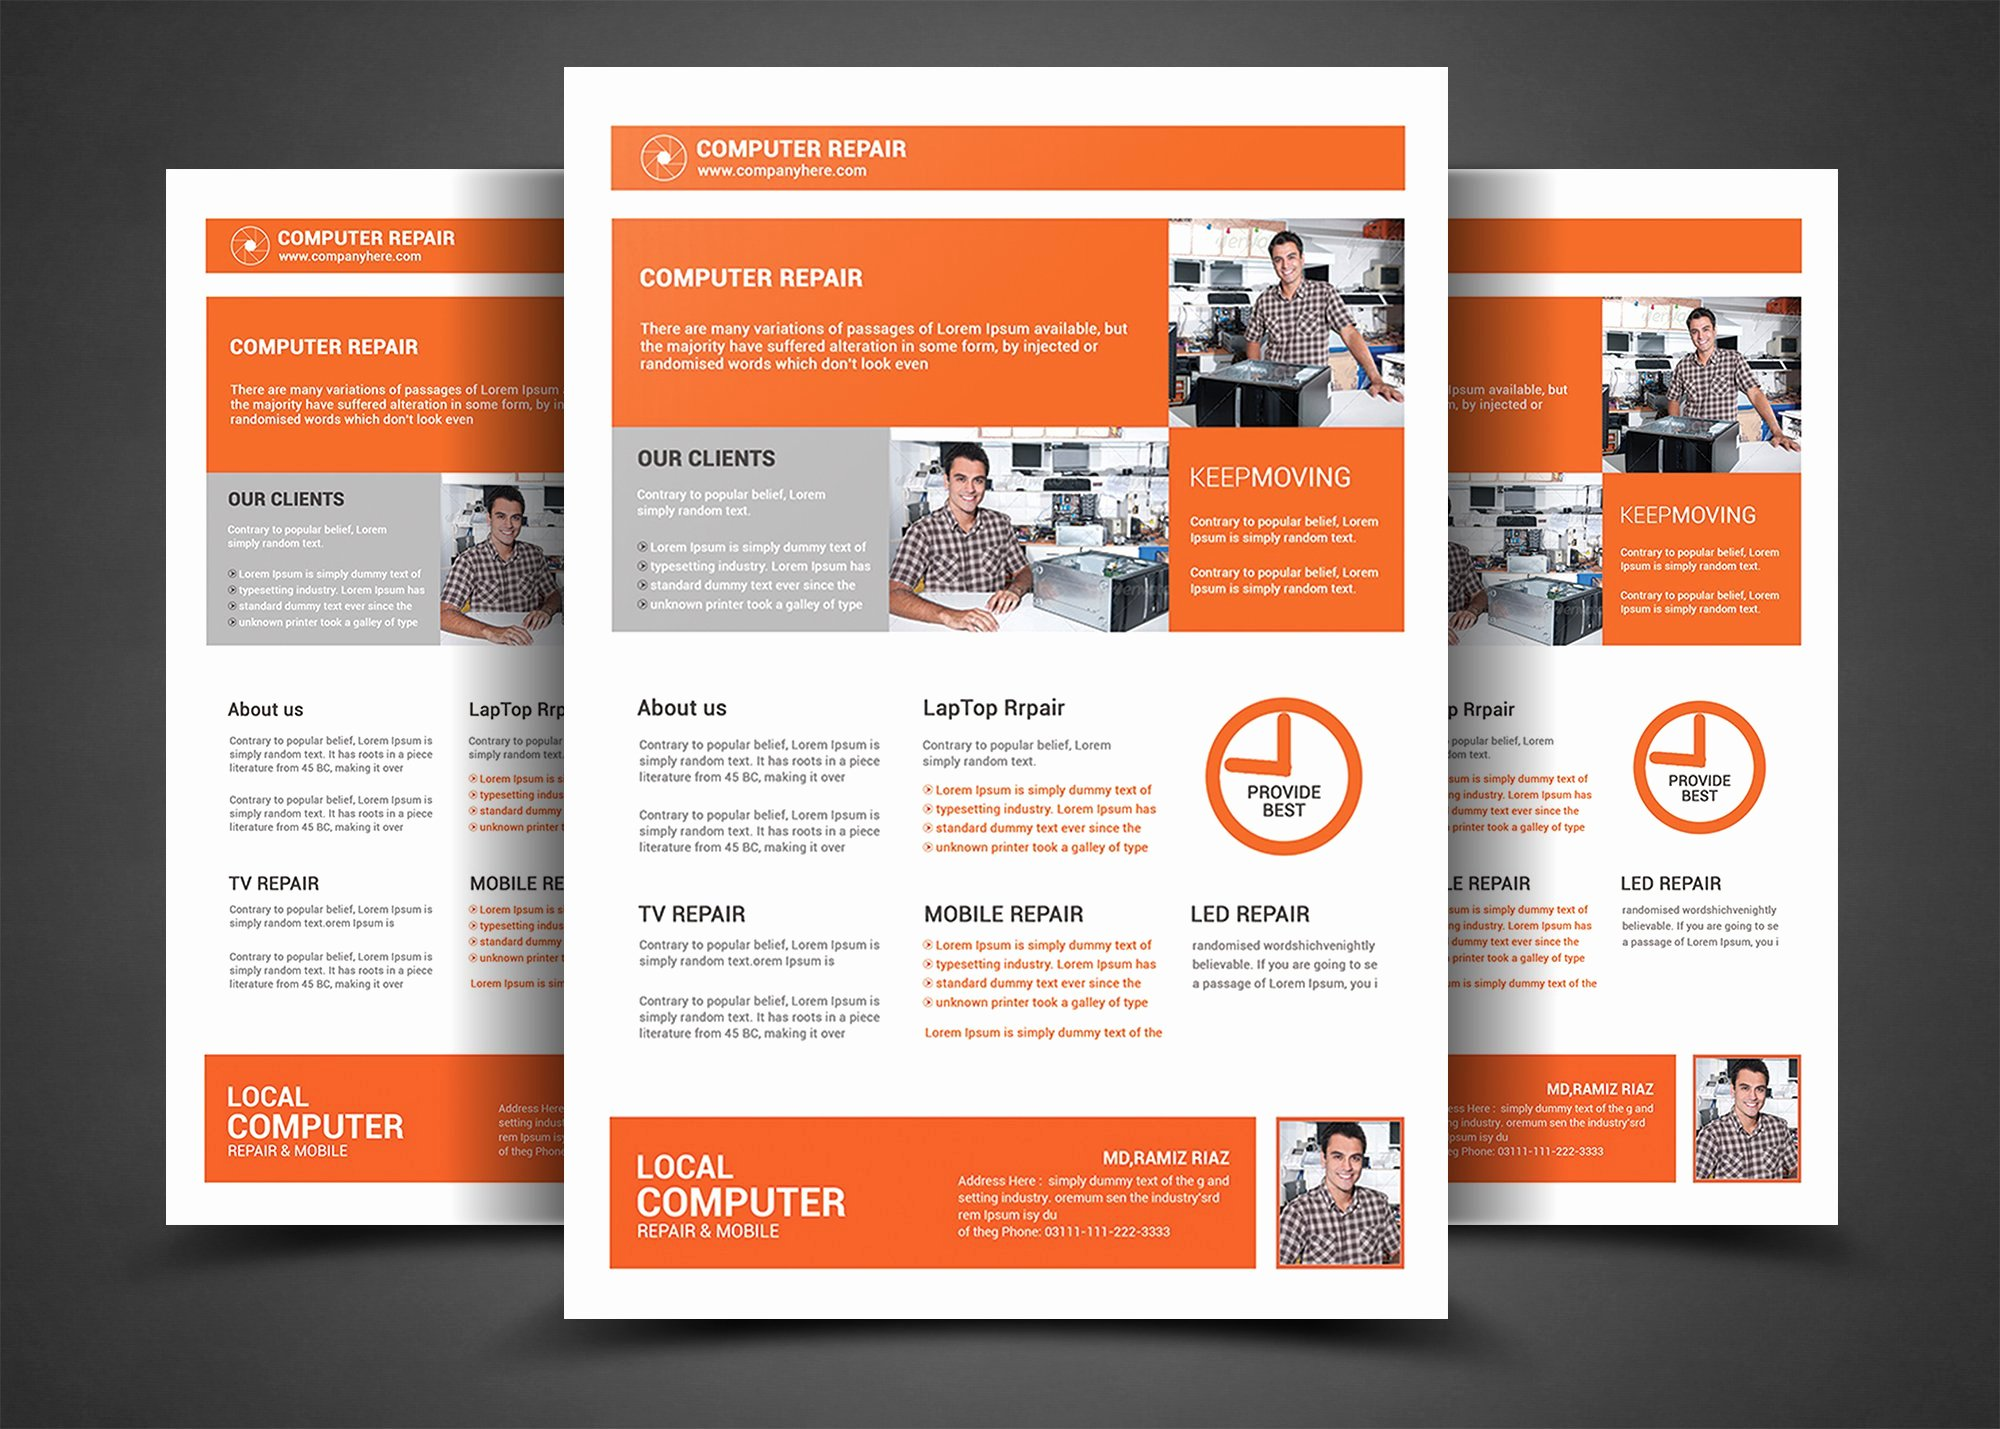 Computer Repair Flyer Template Beautiful Puter Repair Flyer Template Flyer Templates Creative Market